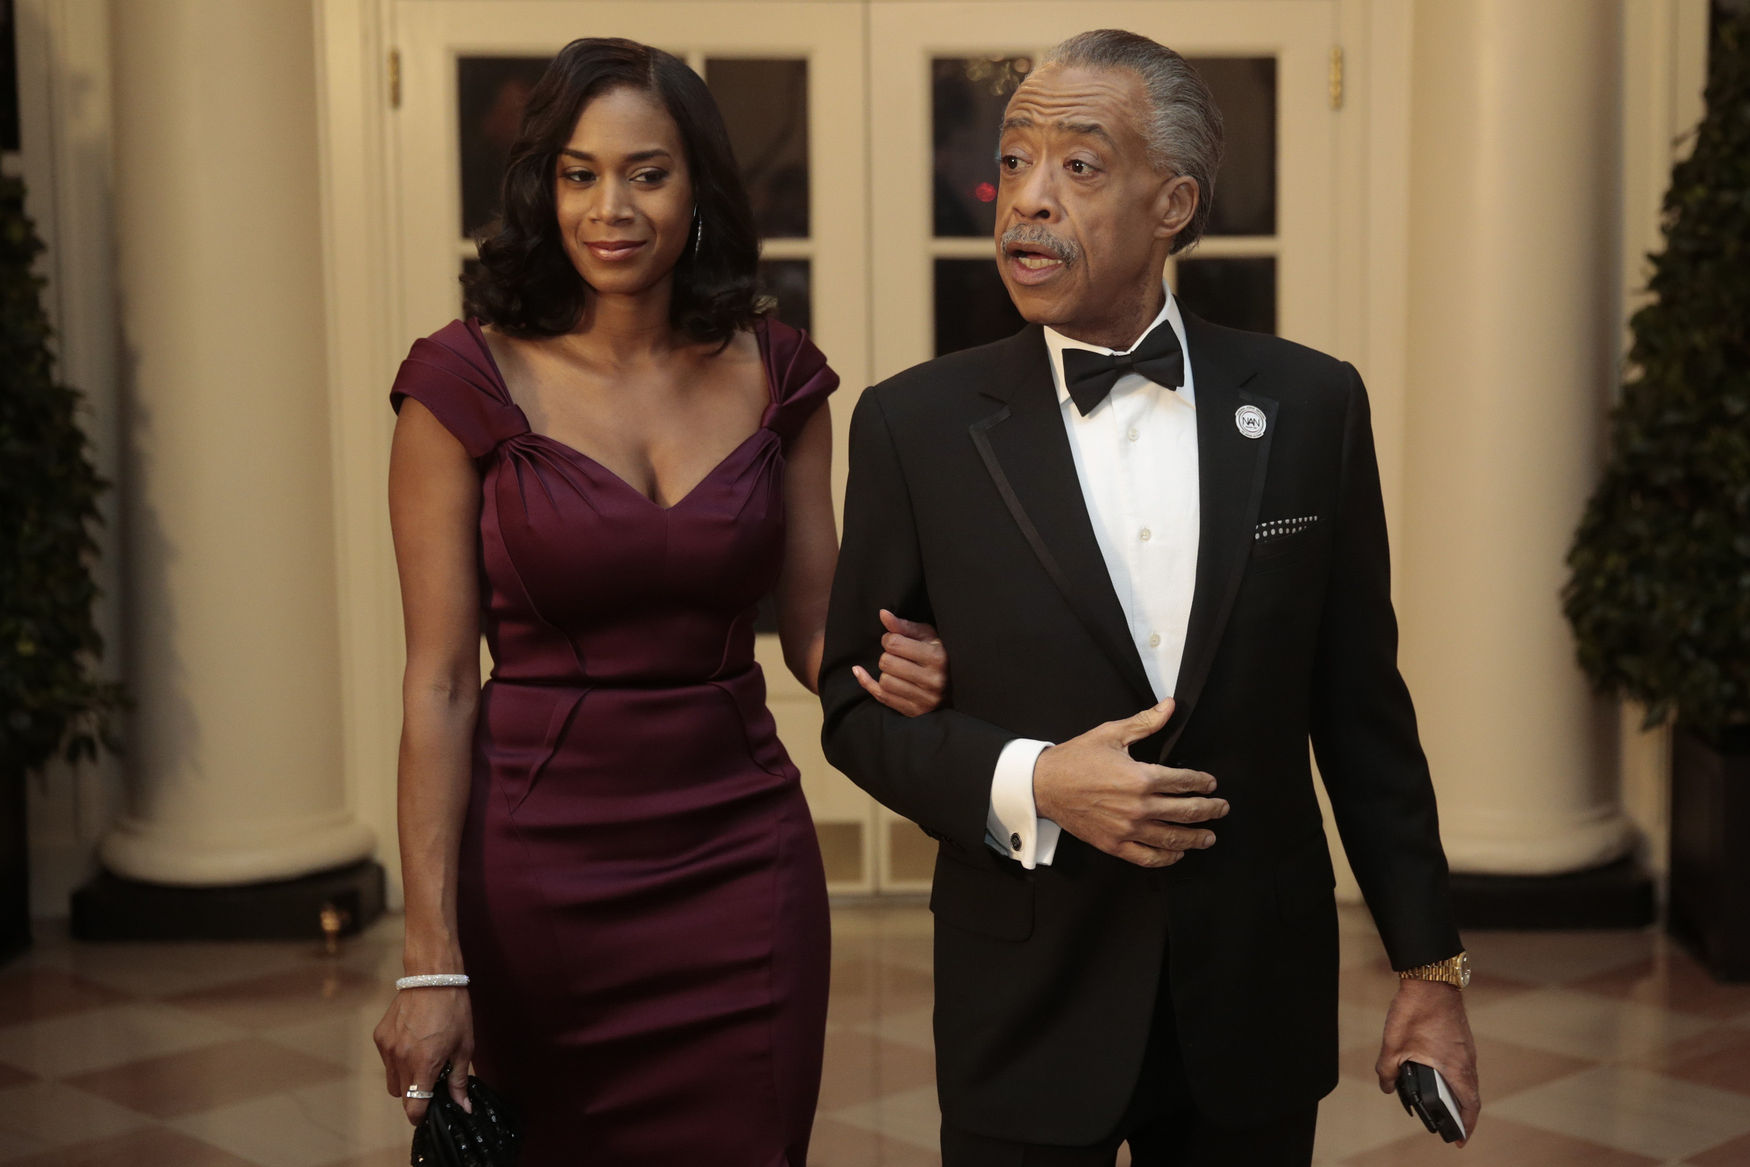 Reverend Al Sharpton, right, and Aisha I. McShaw arrive at a state dinner hosted by U.S. President Barack Obama and U.S. First Lady Michelle Obama in honor of French President Francois Hollande at the White House